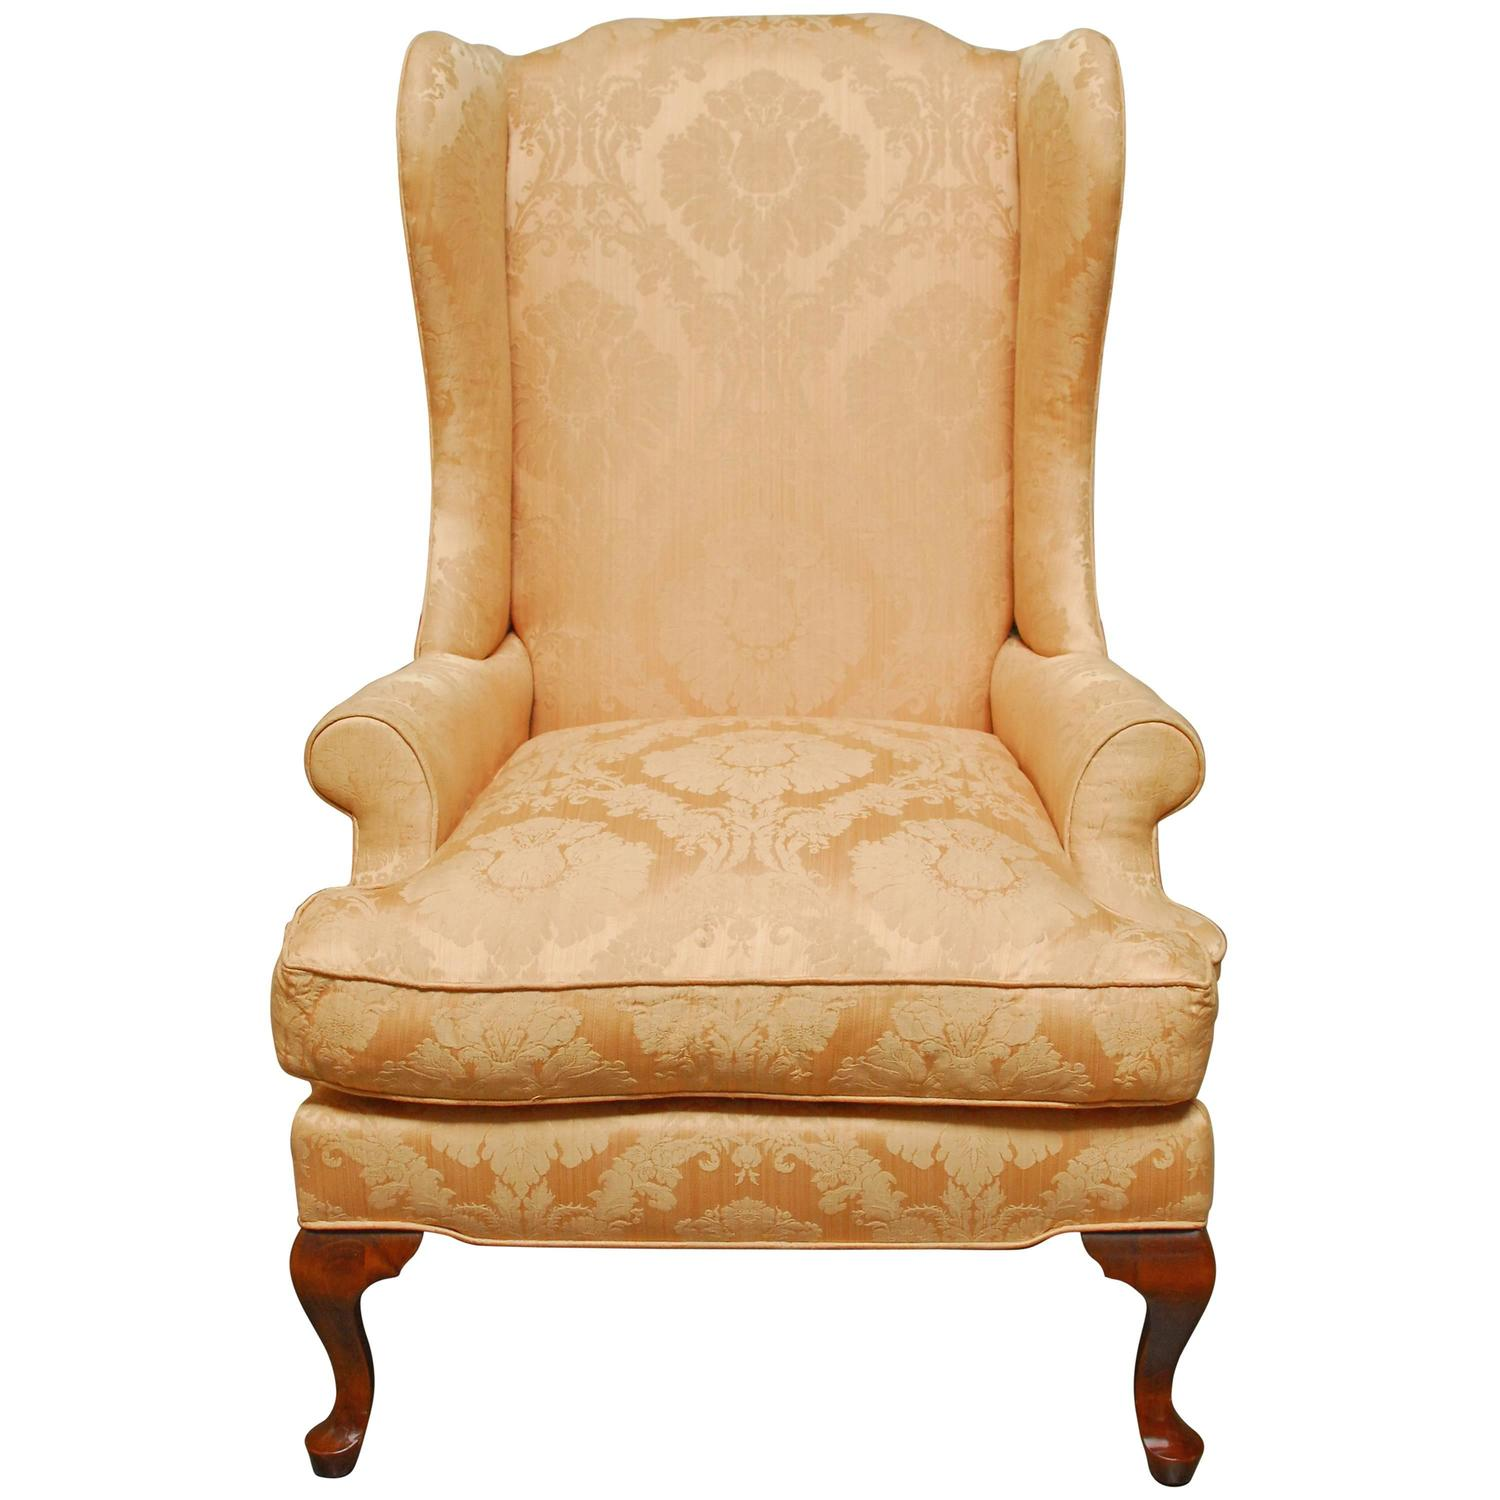 queen anne mahogany wing chair for sale at 1stdibs. Black Bedroom Furniture Sets. Home Design Ideas